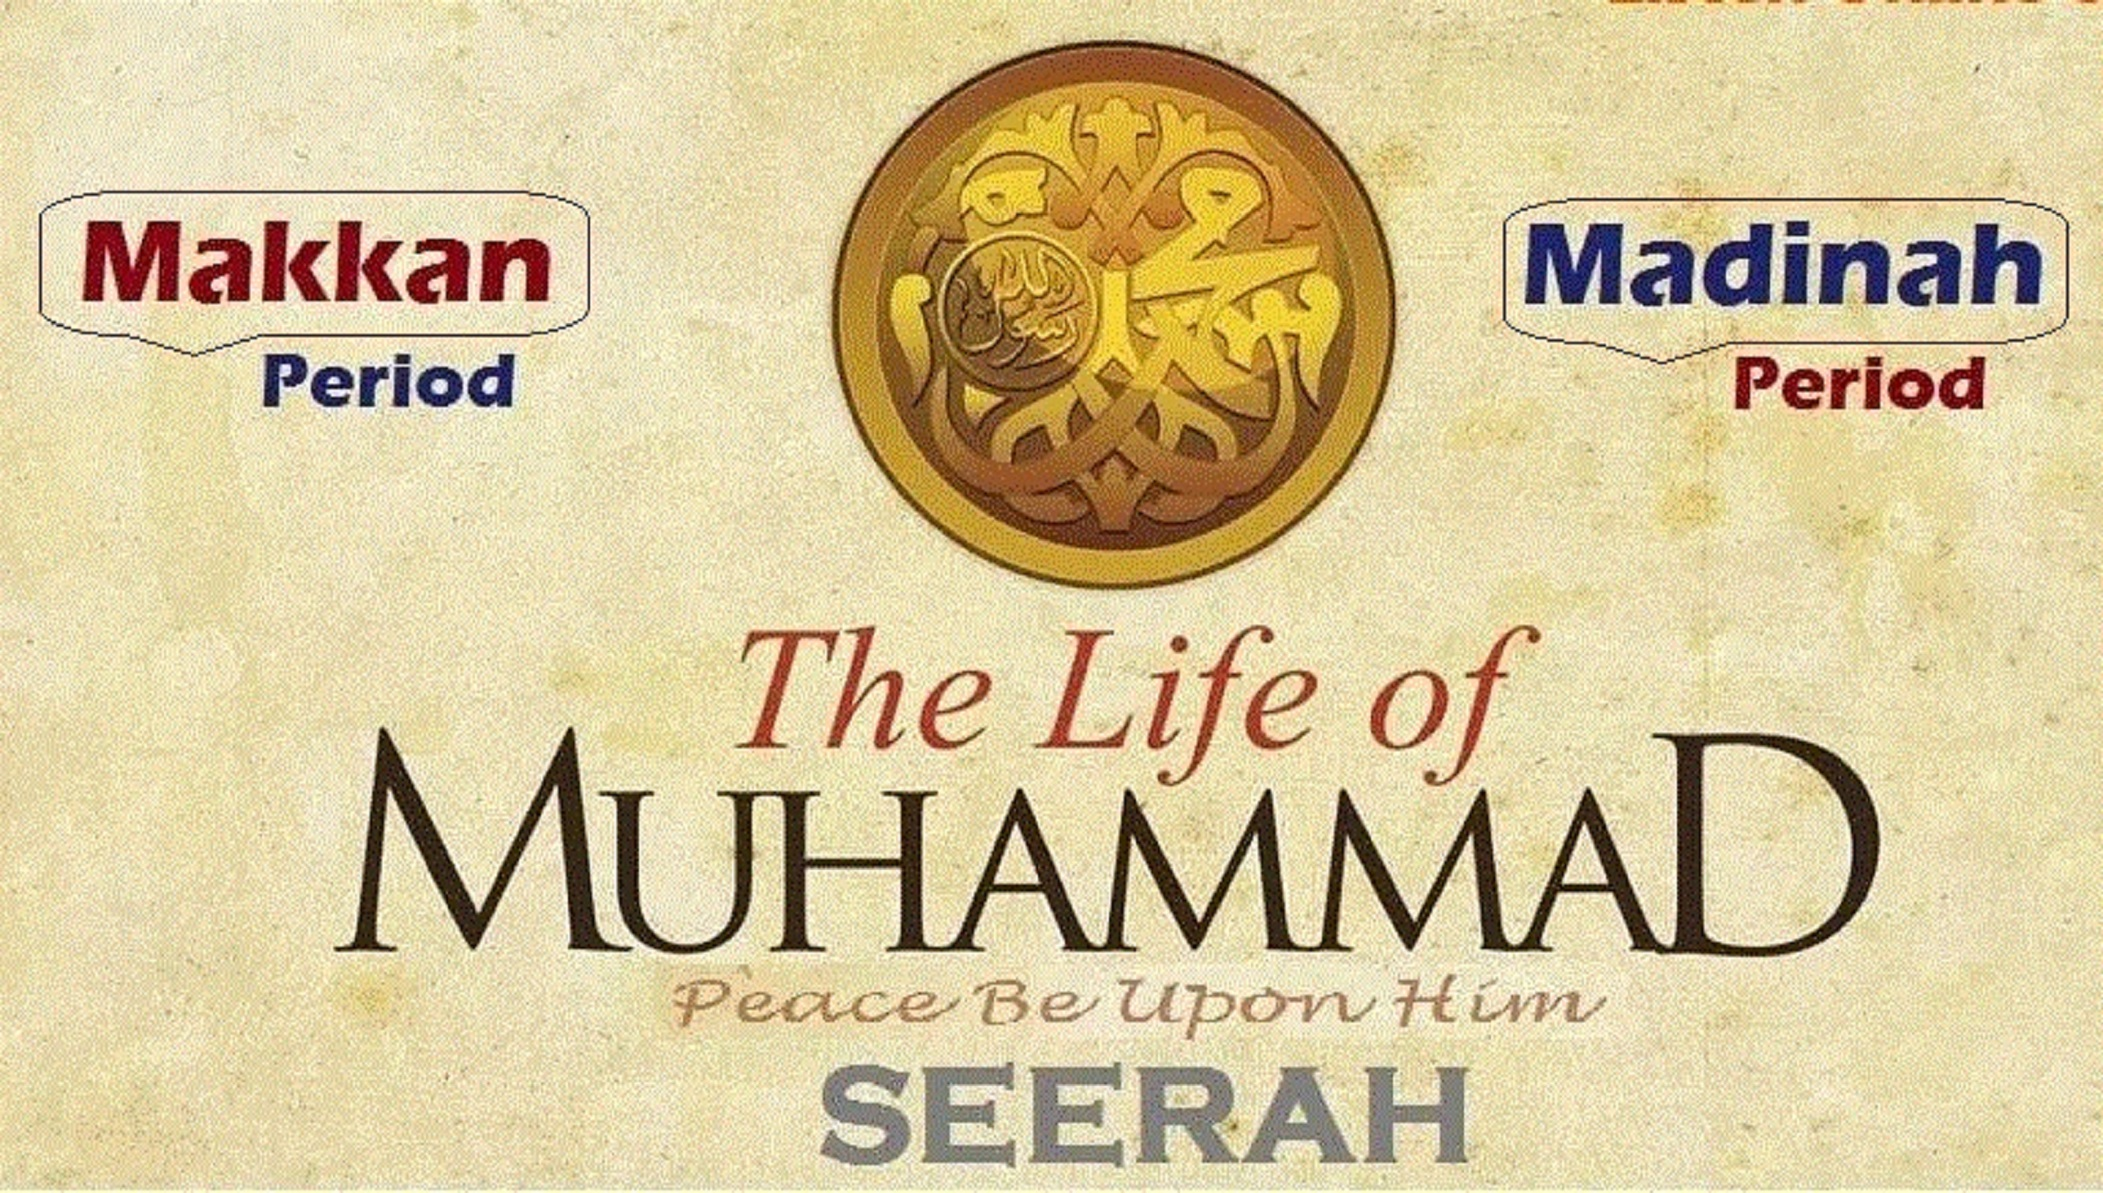 The life and times of Muhammad (S.A.W)